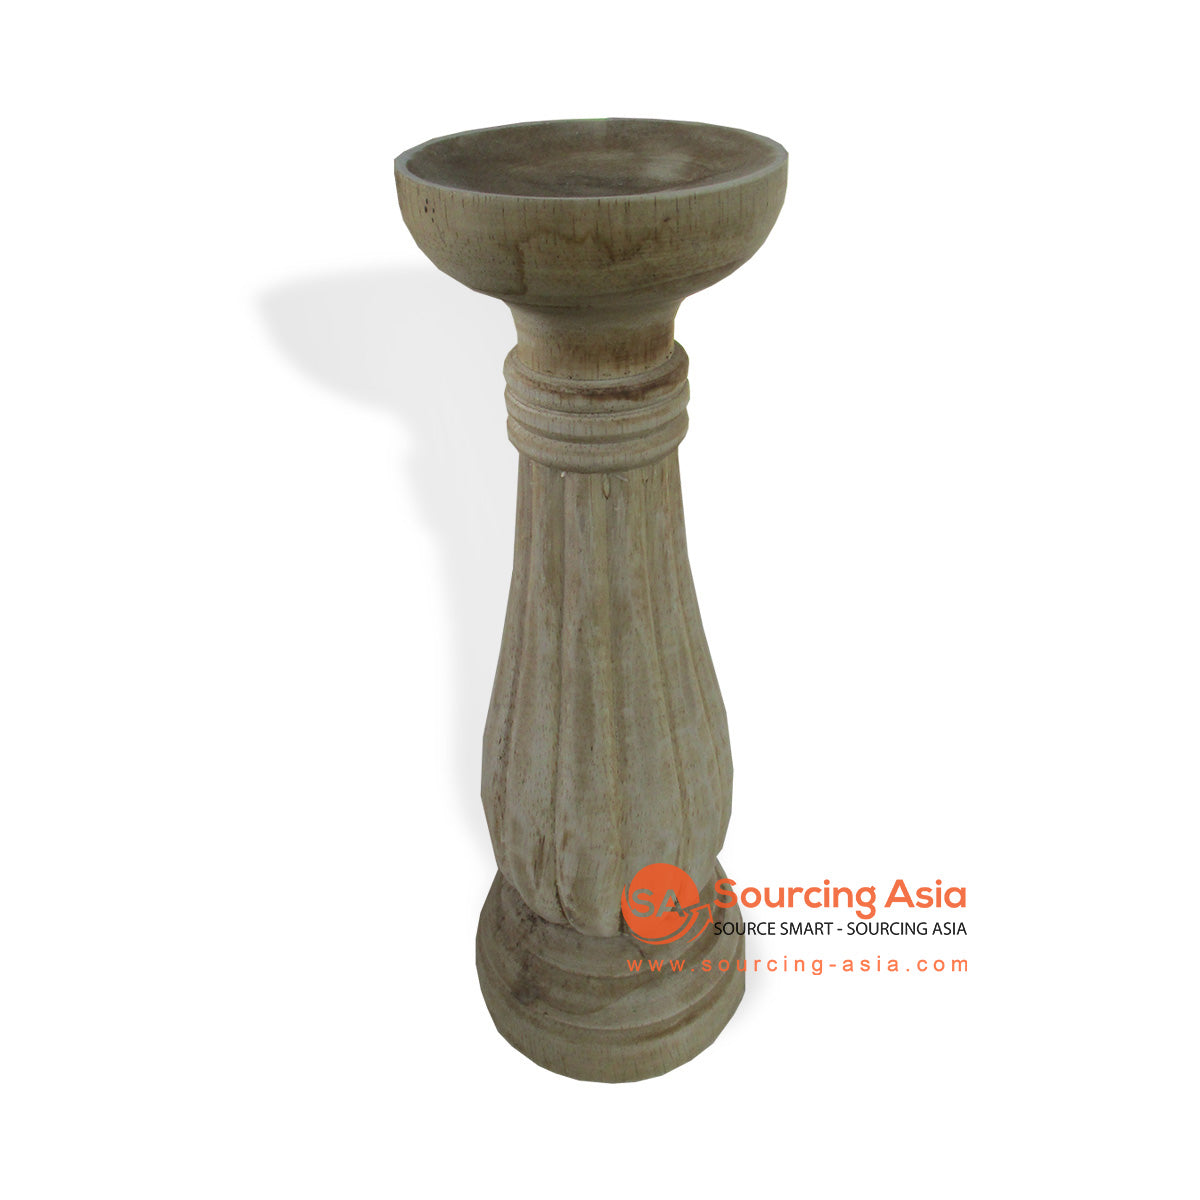 CHWD028-30R CANDLE HOLDER